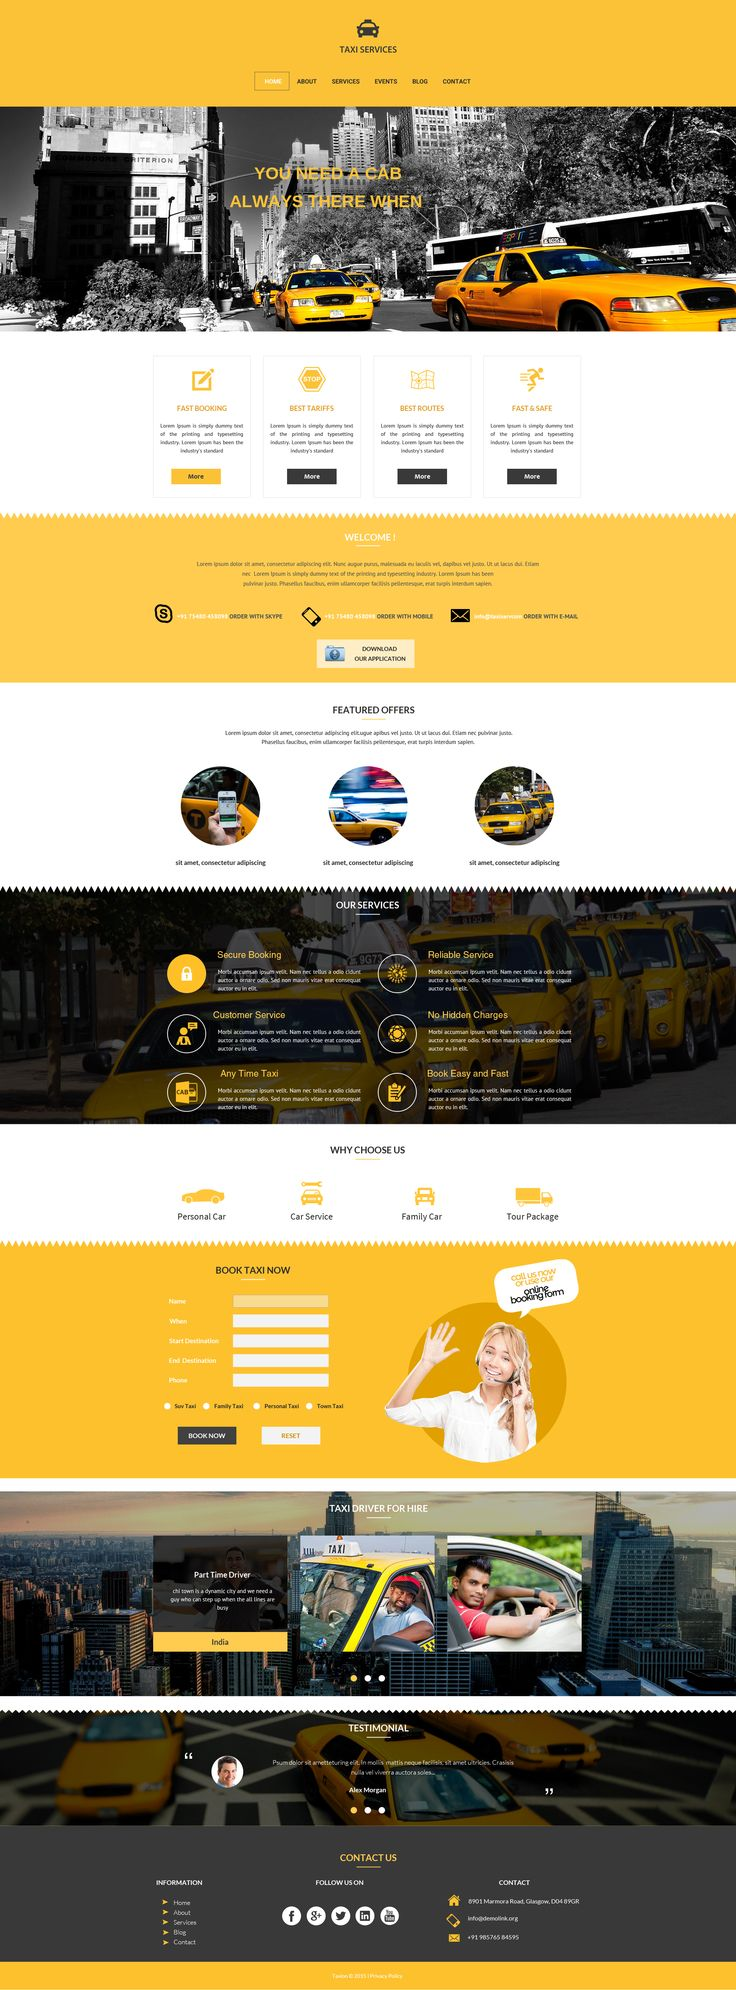 Sell365's Taxi Services Template. One of the best Website Builder in India. Design and customize your own website with our free website templates.